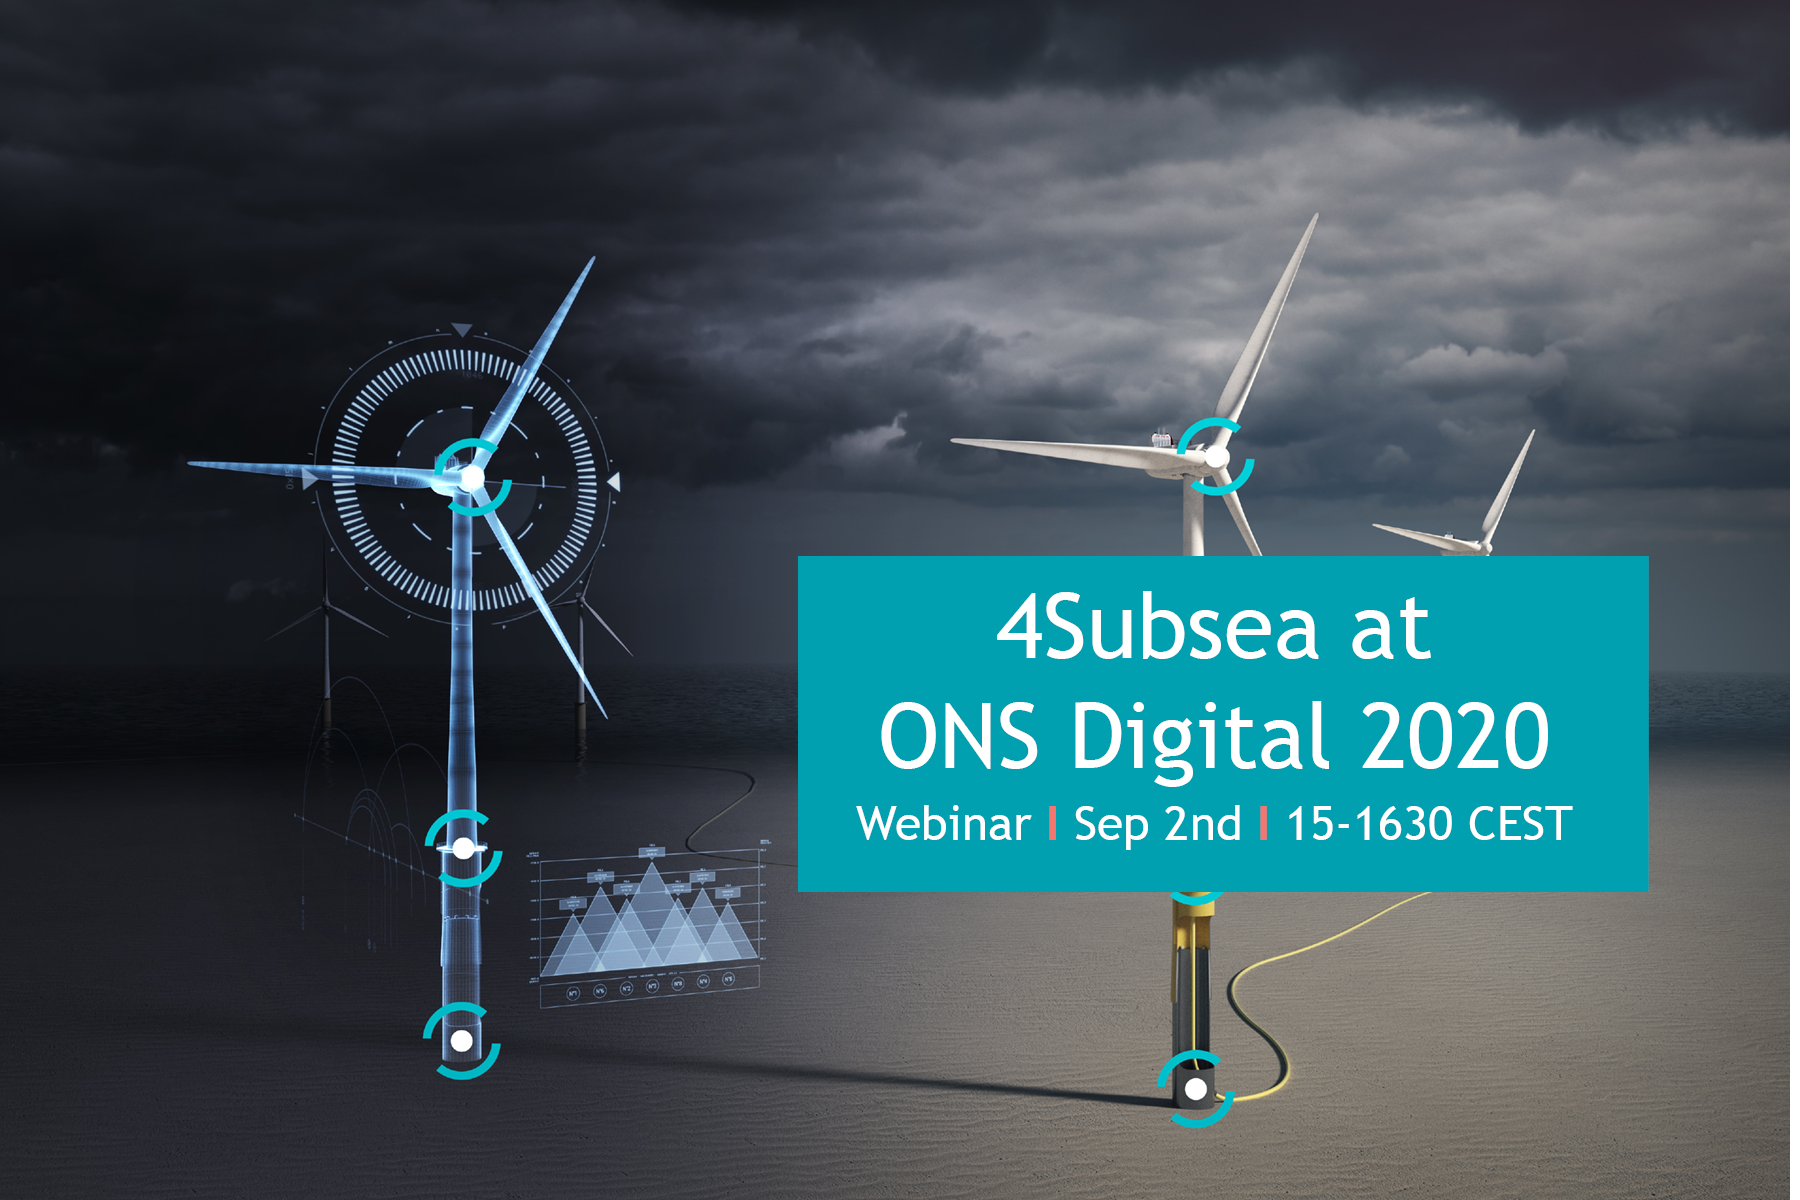 ONS Digital 2020